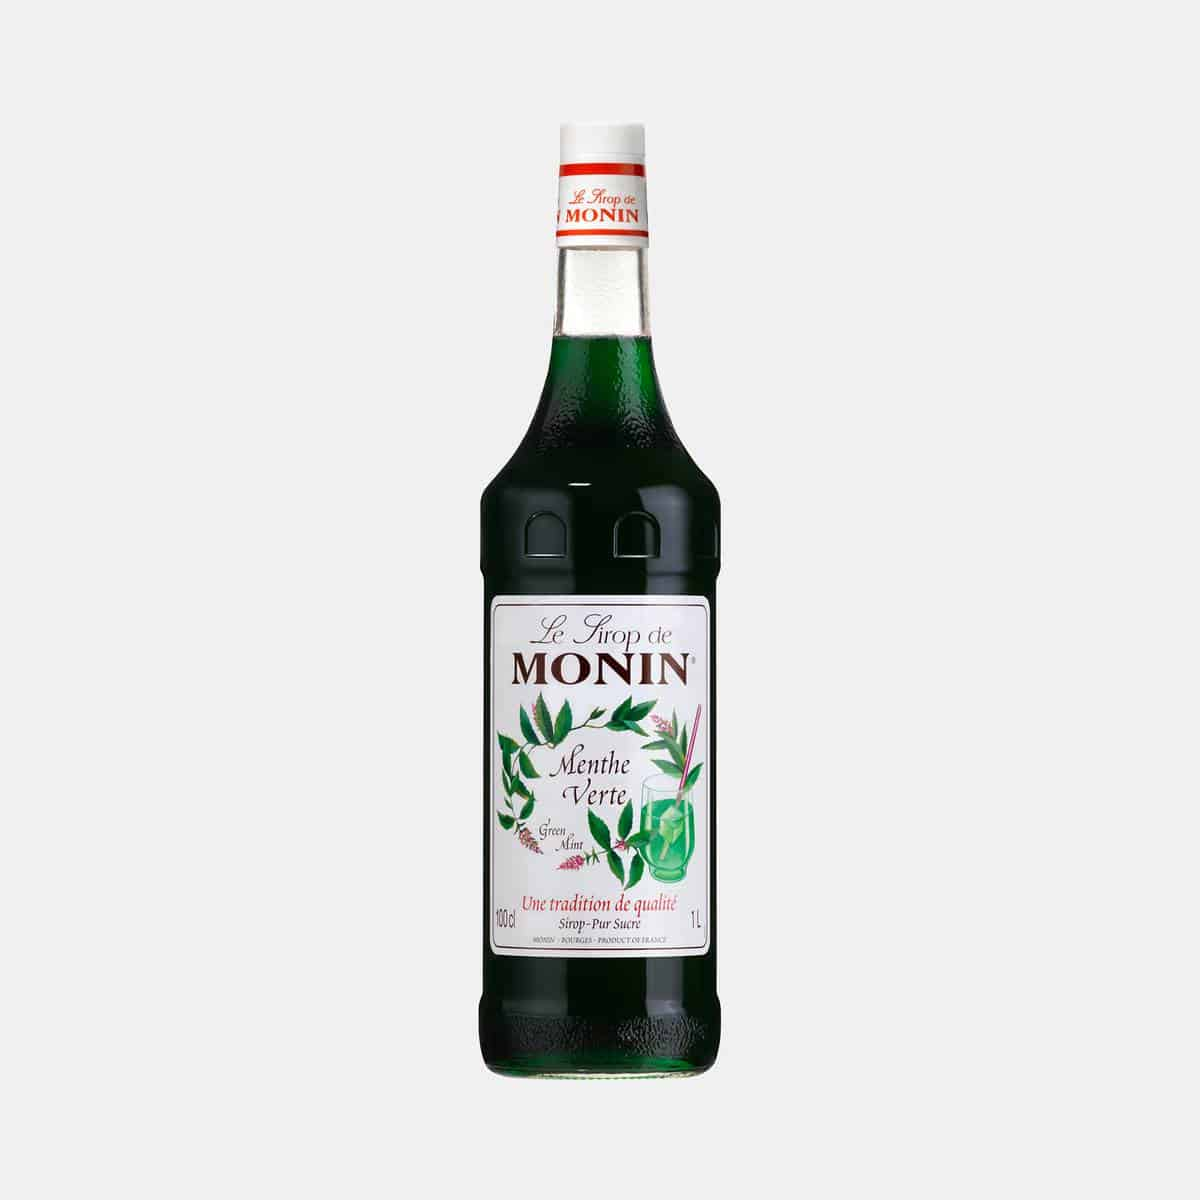 Monin Green Mint Syrup 1 Liter Glass Bottle